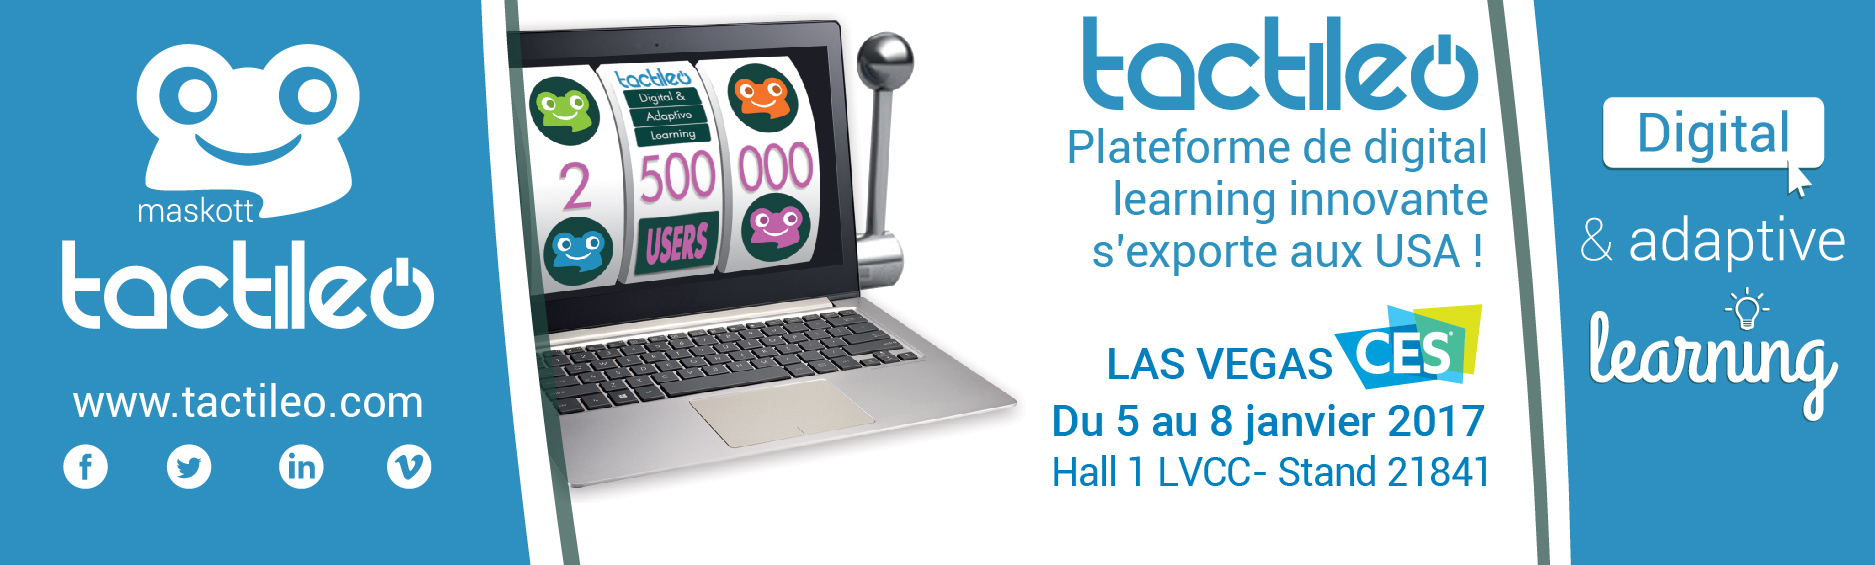 Maskott Tactileo digital learning e-learning CES las vegas innovation innovative